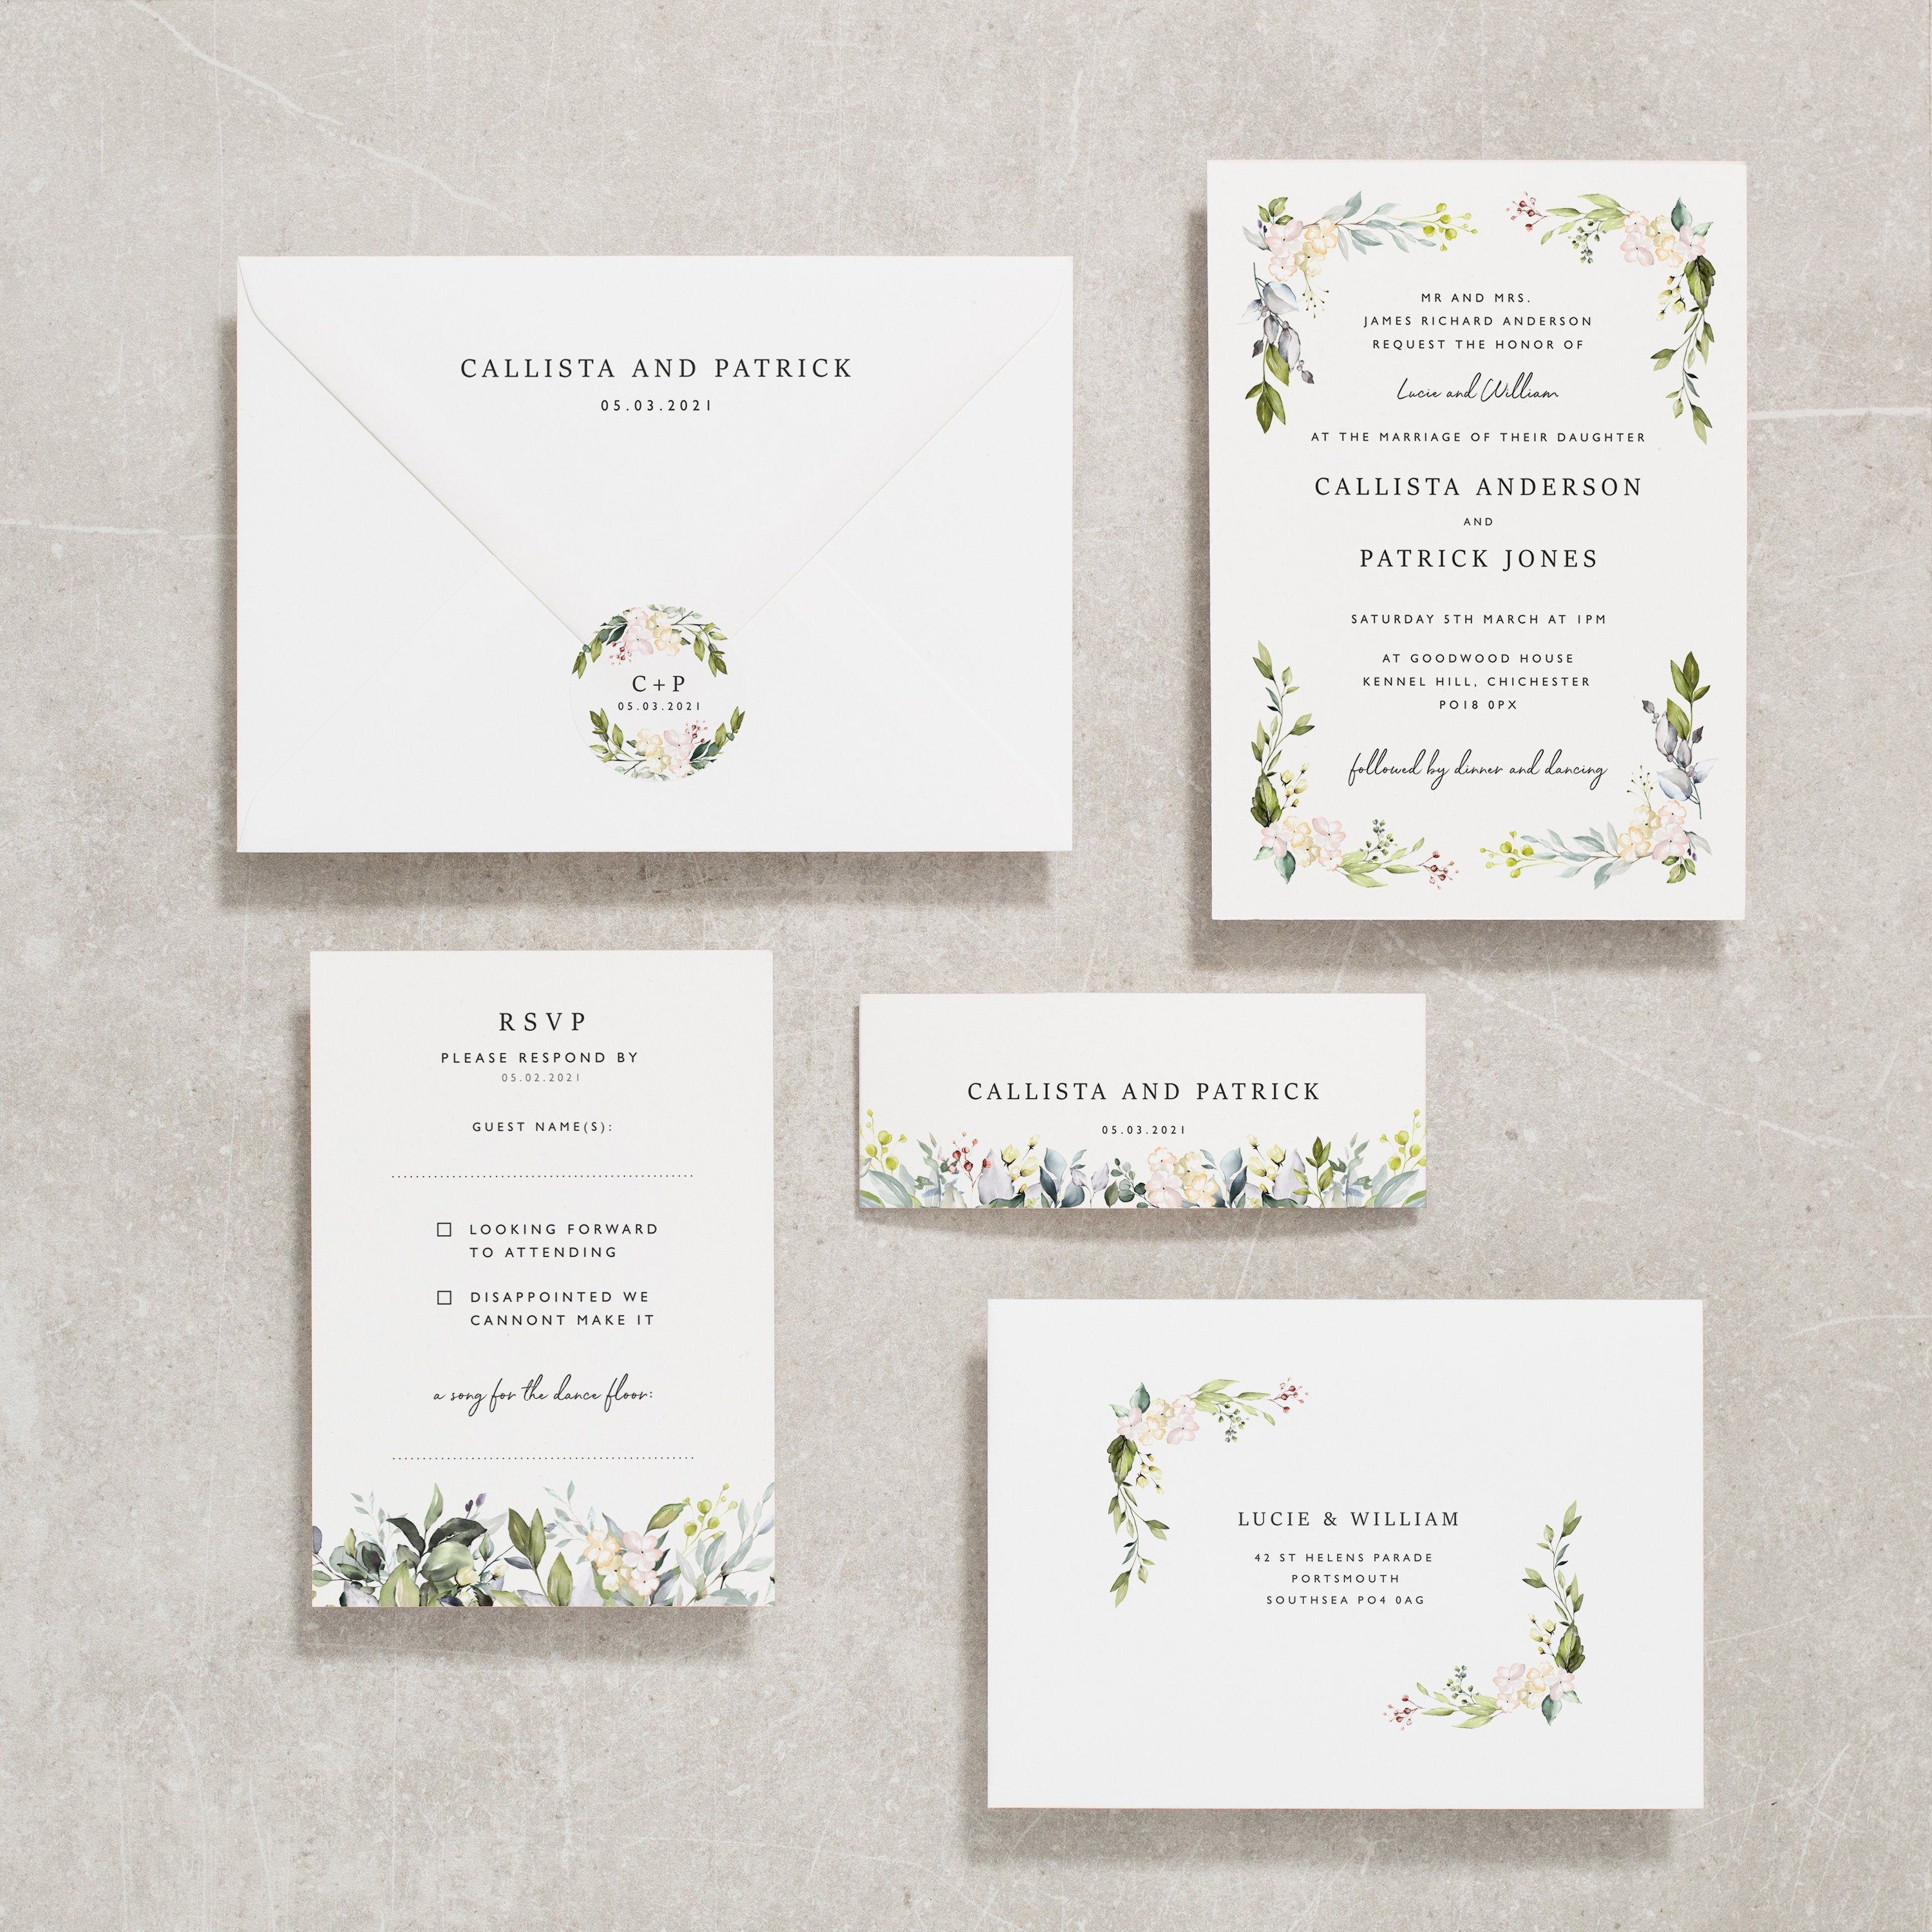 Floral Wedding Invitations With Rsvp Greenery Wedding Invite Wedding Invitation Set Botanical Wedding Invites Foliage Callista 136 Botanical Wedding Invitations Floral Wedding Invitations Greenery Wedding Invitations